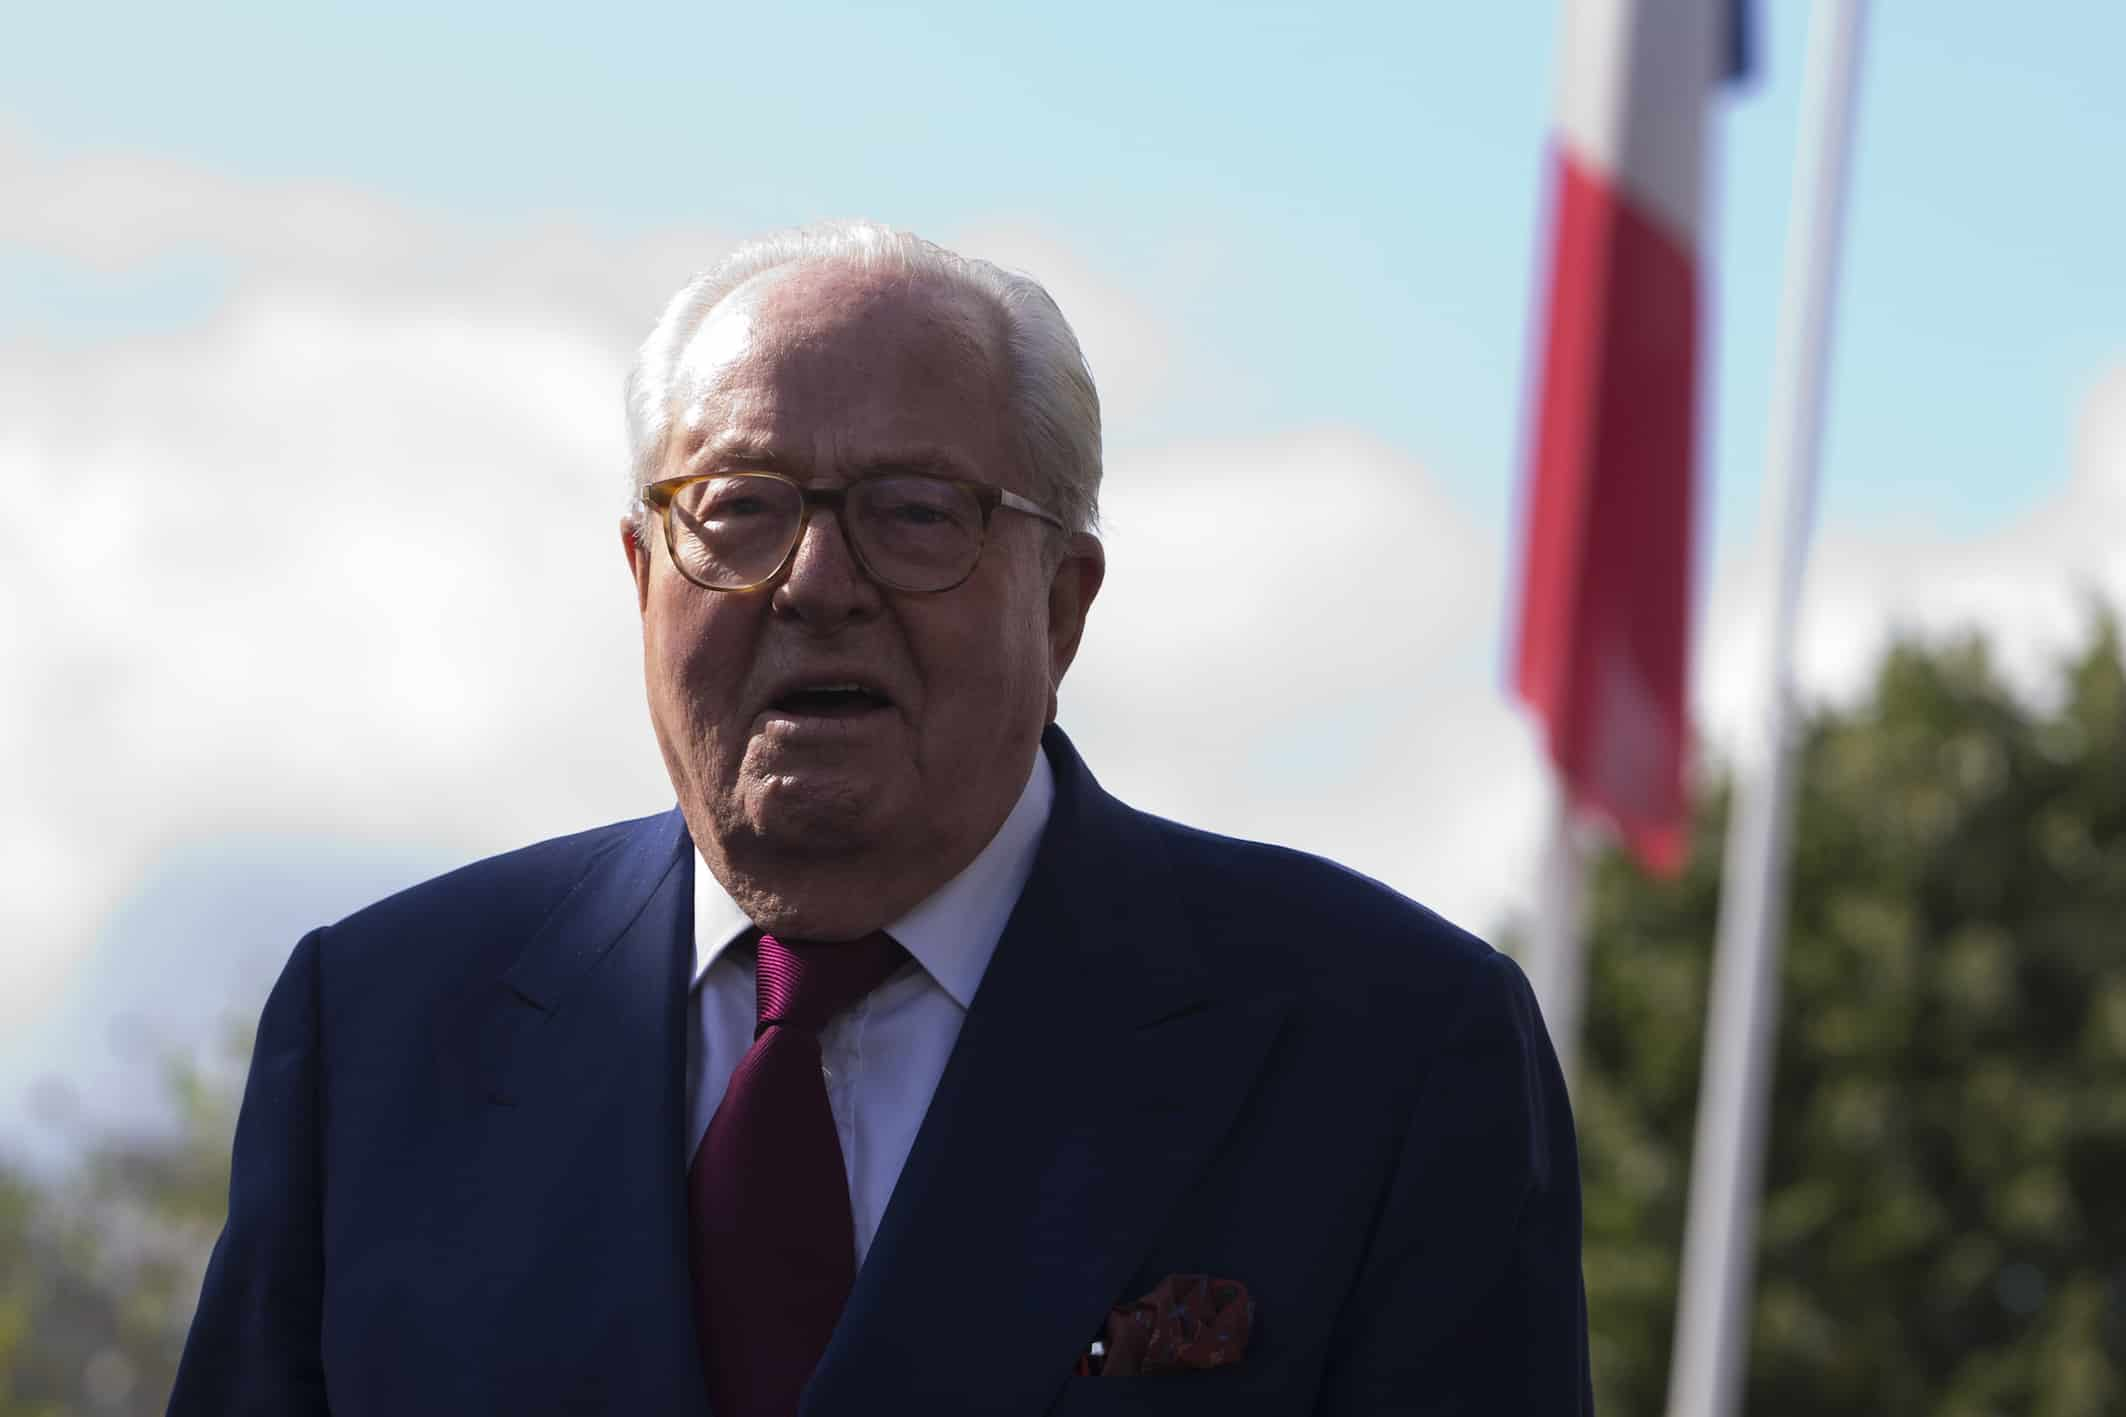 French far-right National Front (FN) party founder and honorary President Jean-Marie Le Pen leaves the party's headquarters in Nanterre, near Paris, on August 20, 2015.